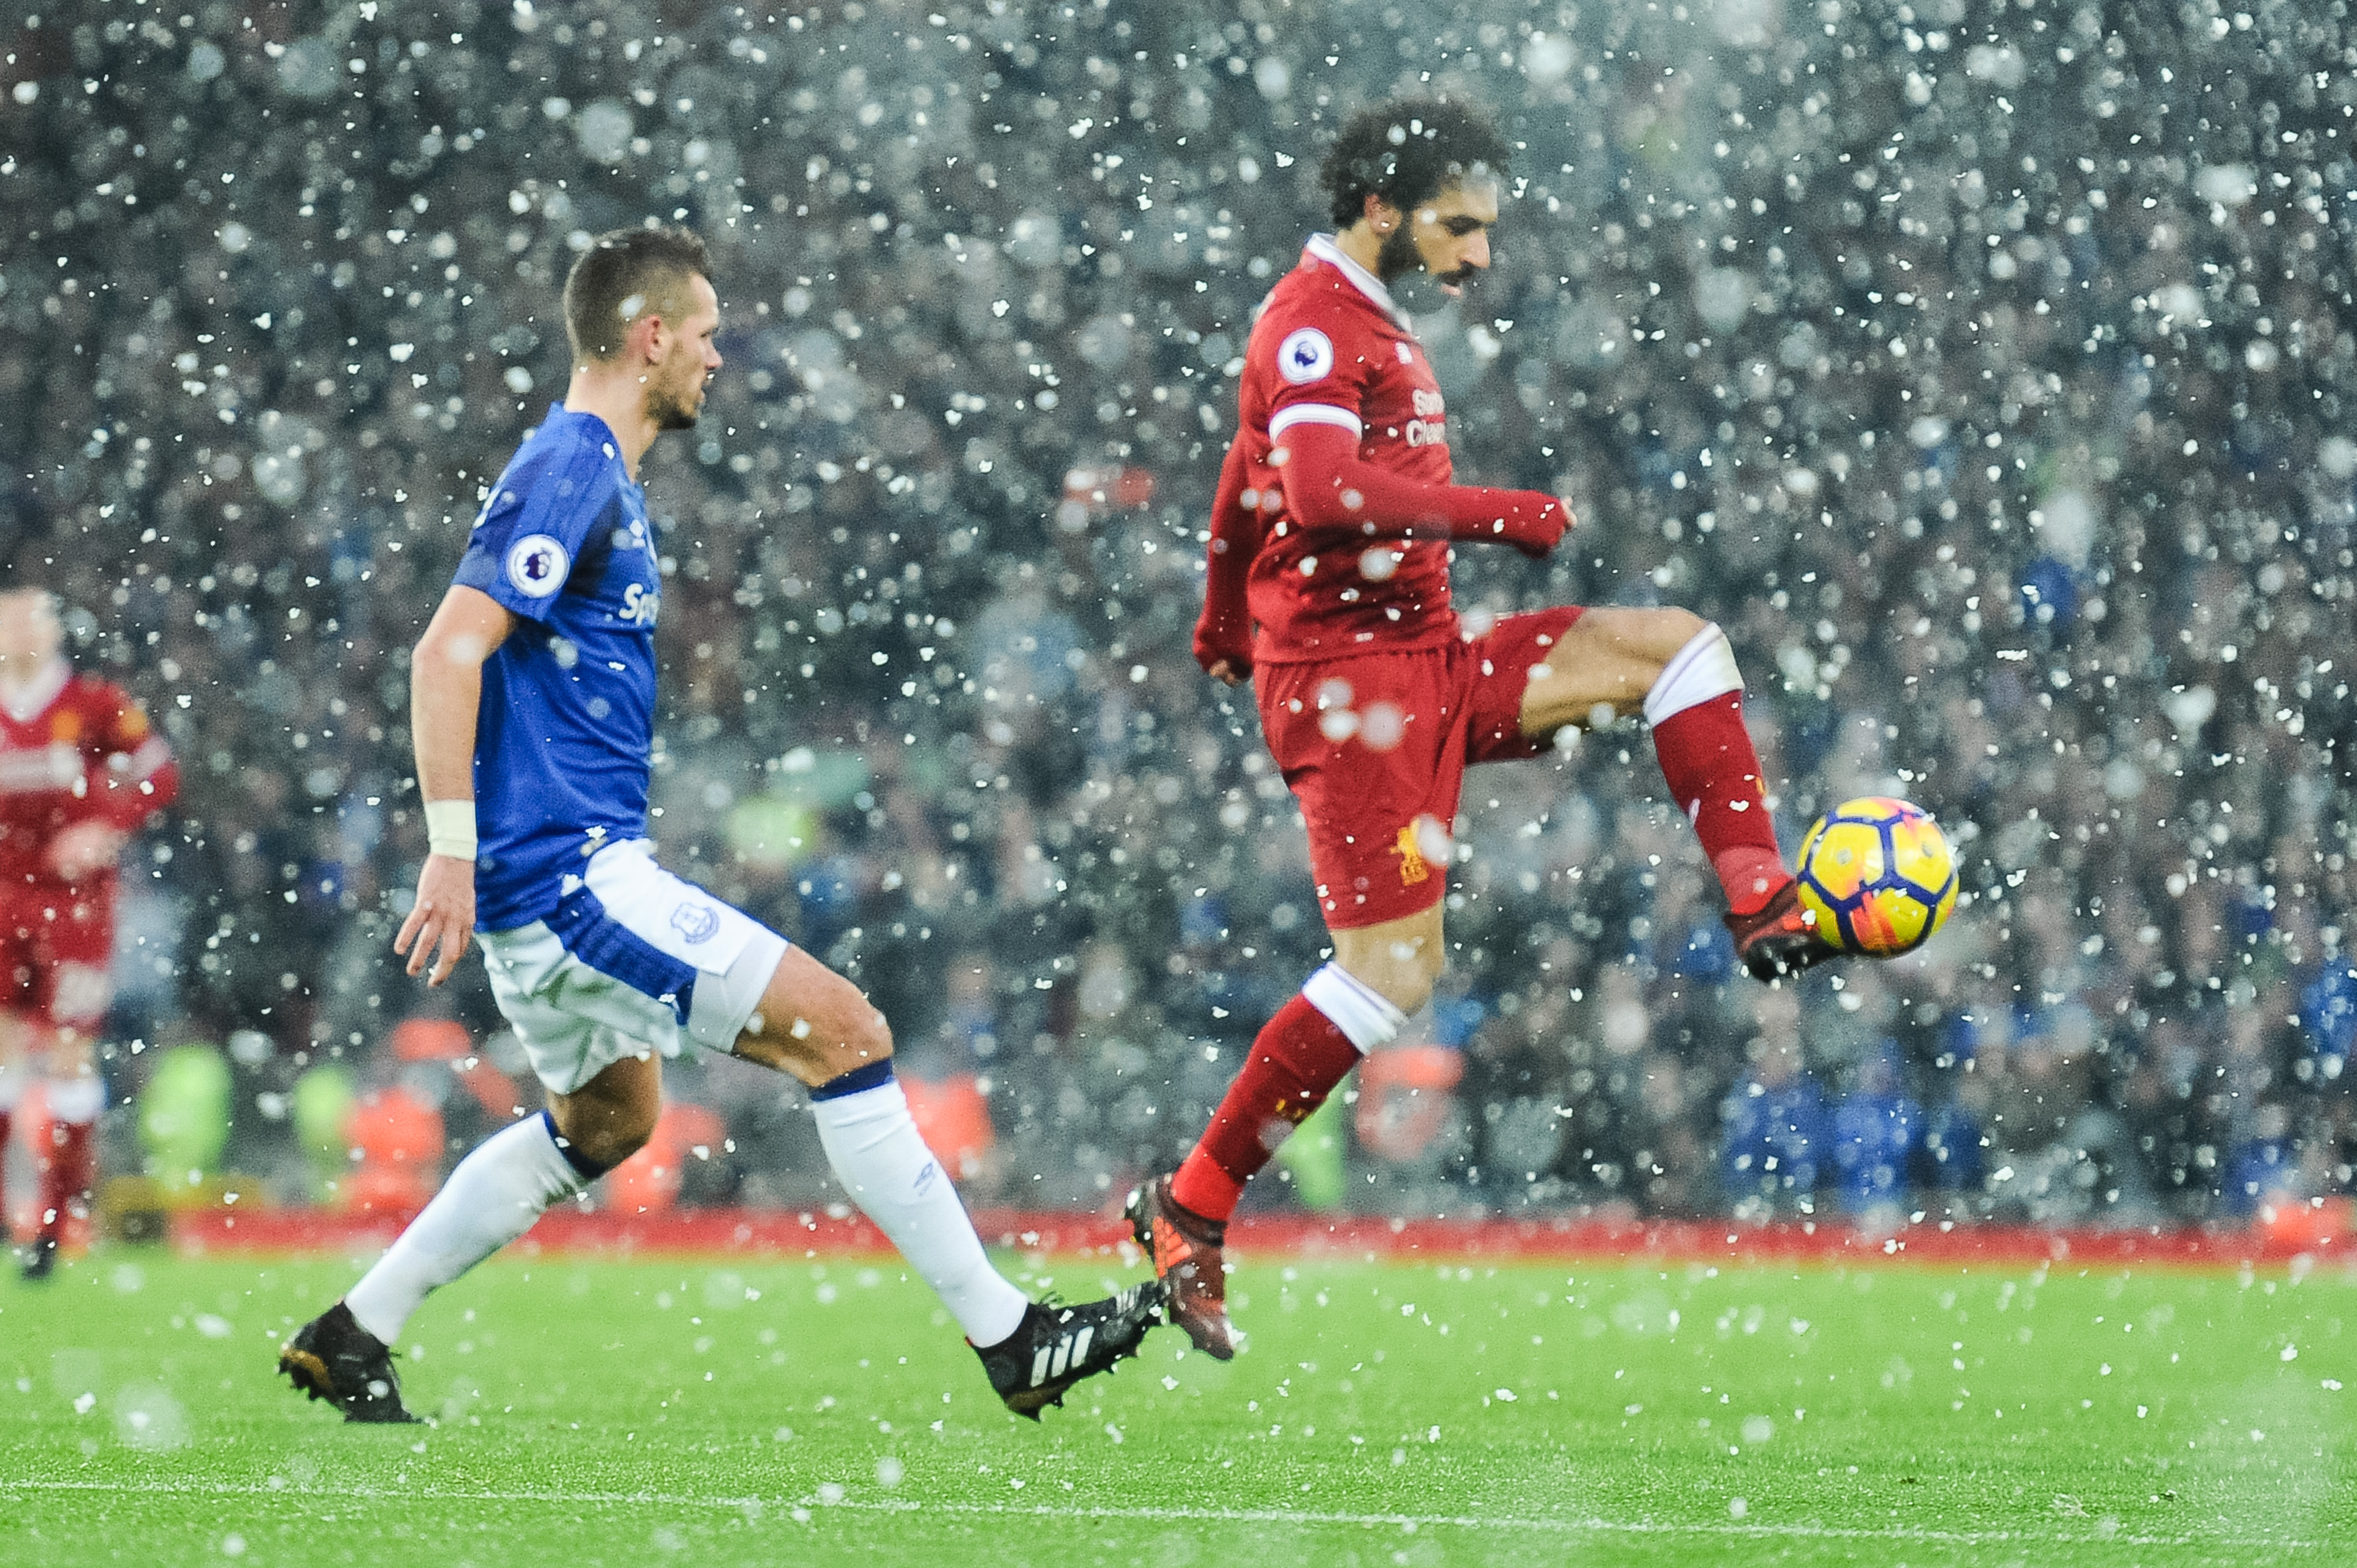 Liverpool vs Everton, Premier League, Football, Anfield, UK, 10.12.2017